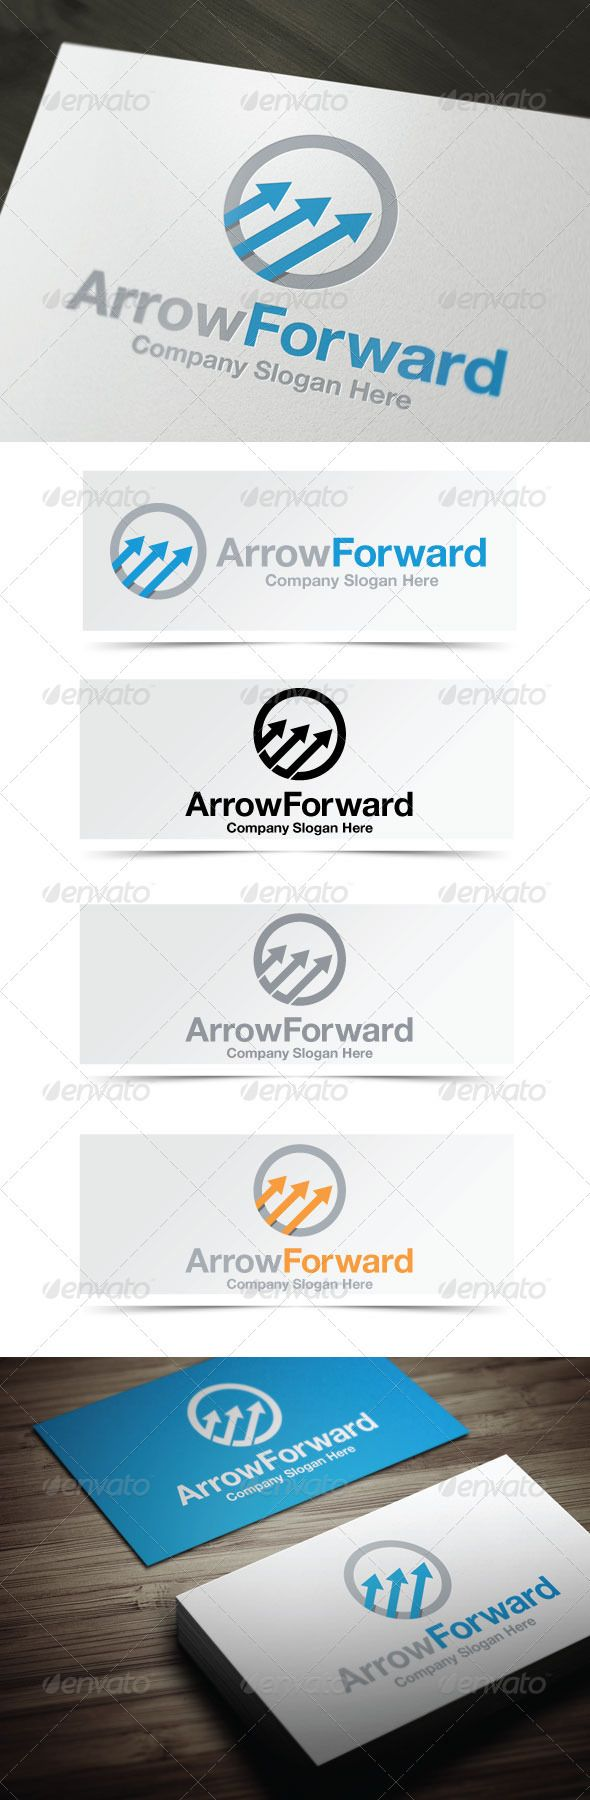 Arrow Forward Logo templates, Travel logo, Logo design